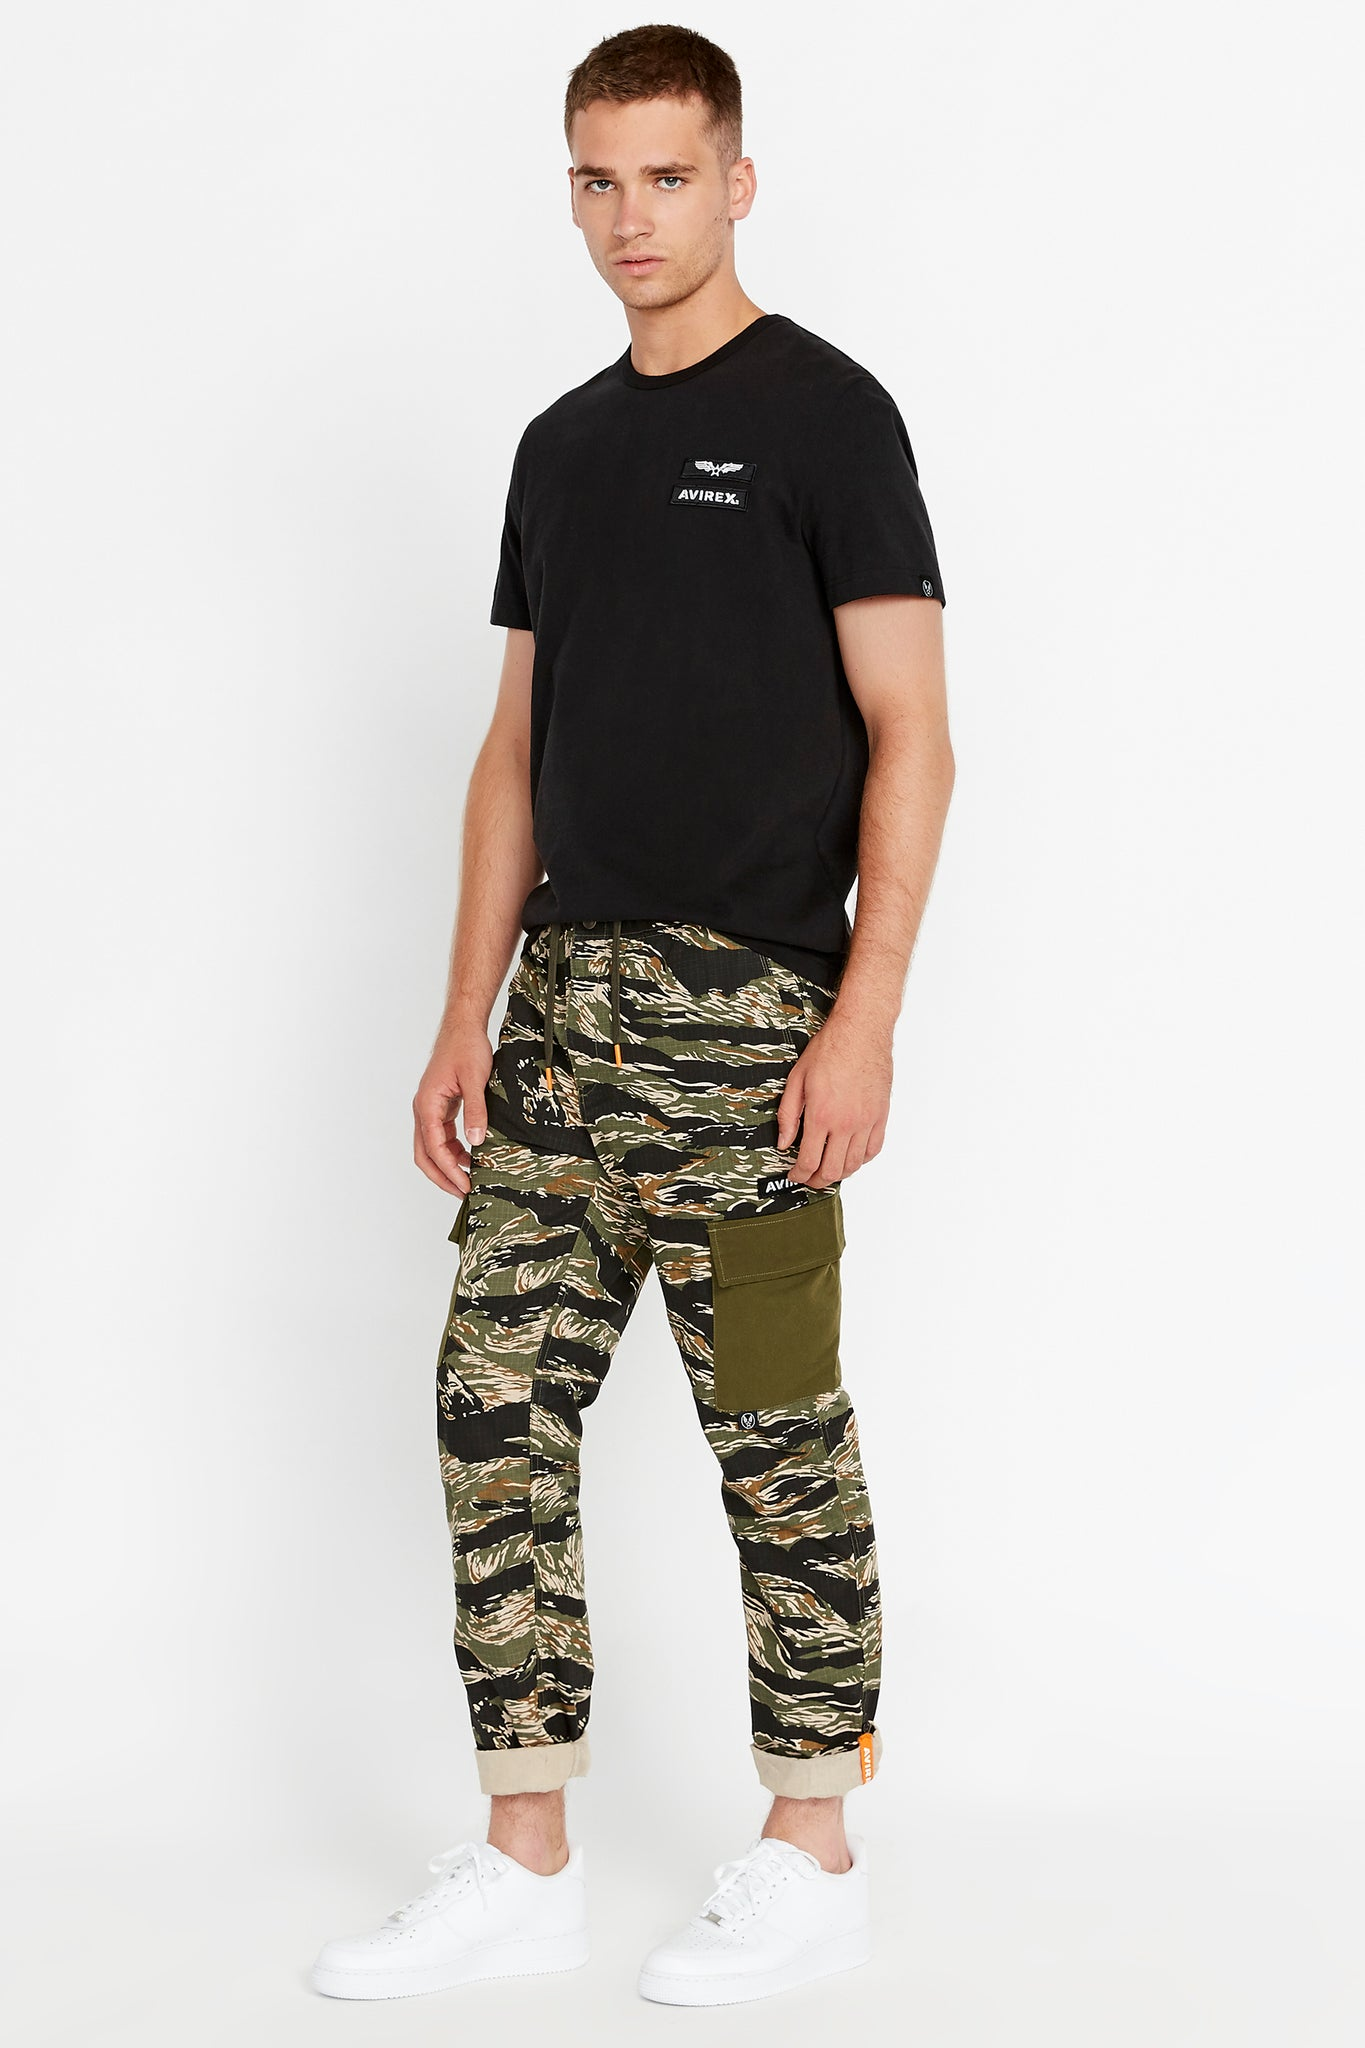 Side full view of men wearing a tigerstripe camo print pants with side cargo pockets in solid color and black short sleeve crew neck T-Shirt, rolled up hem with reflective logo